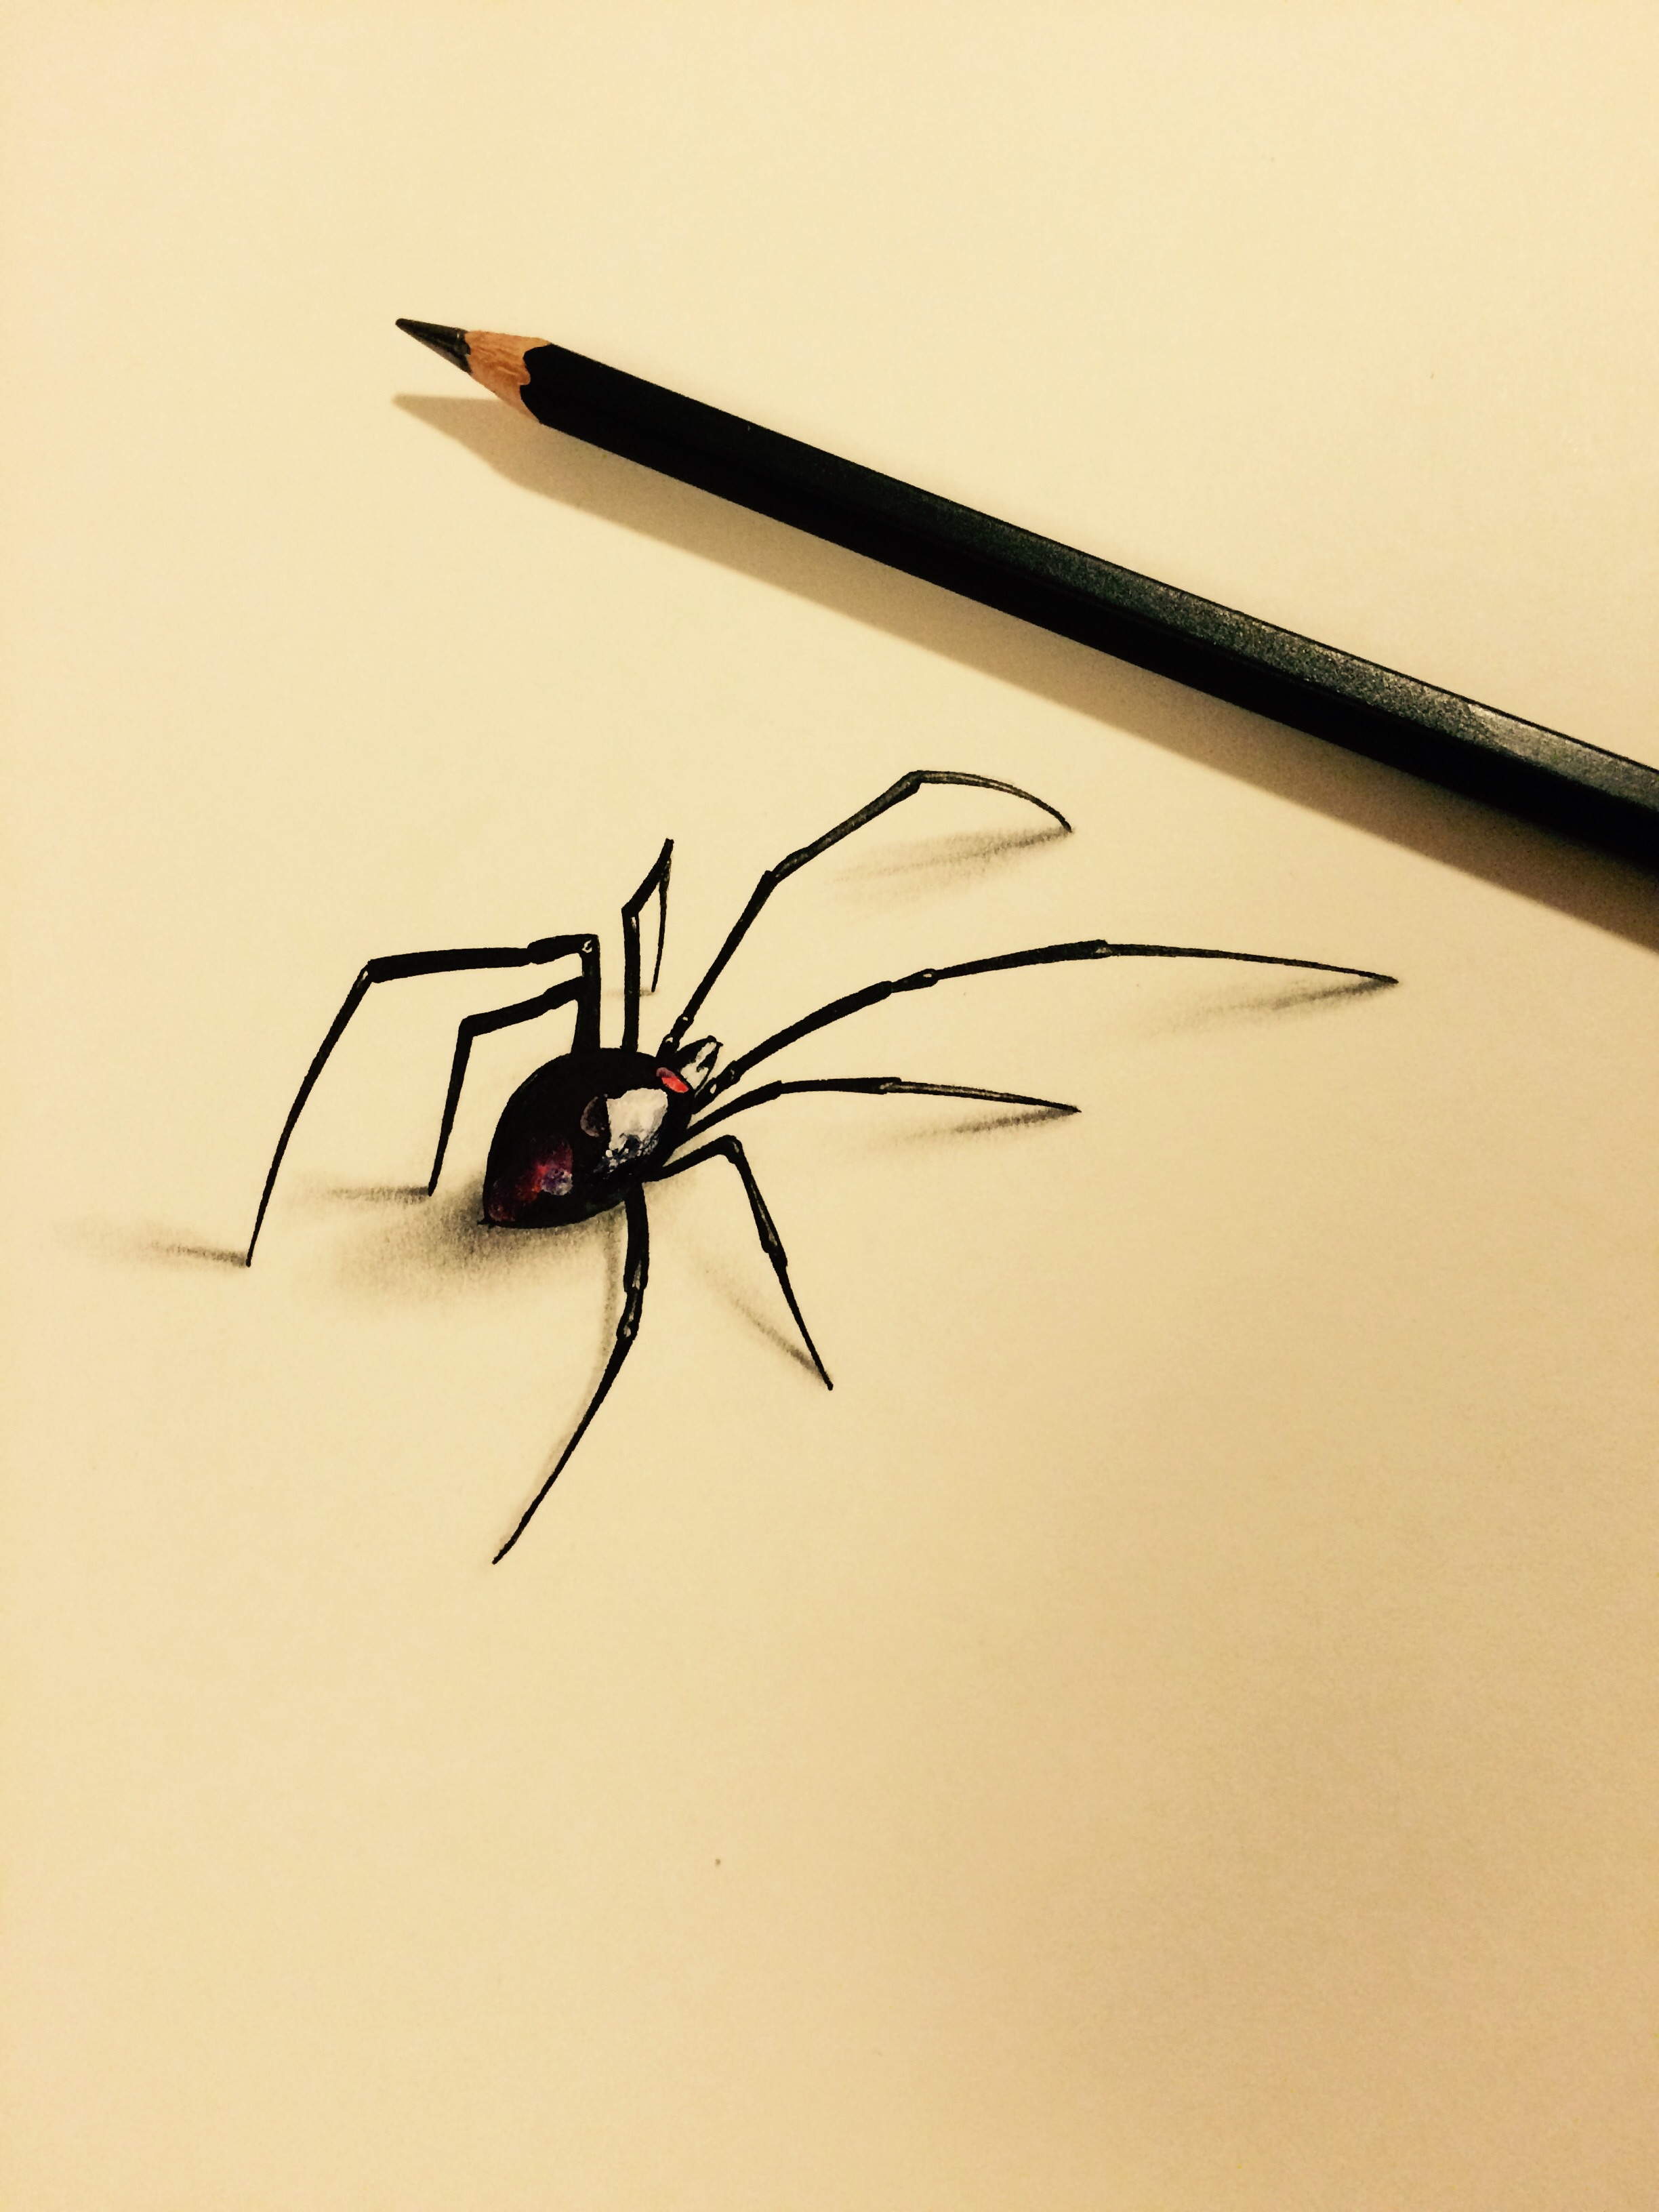 Spider of the page